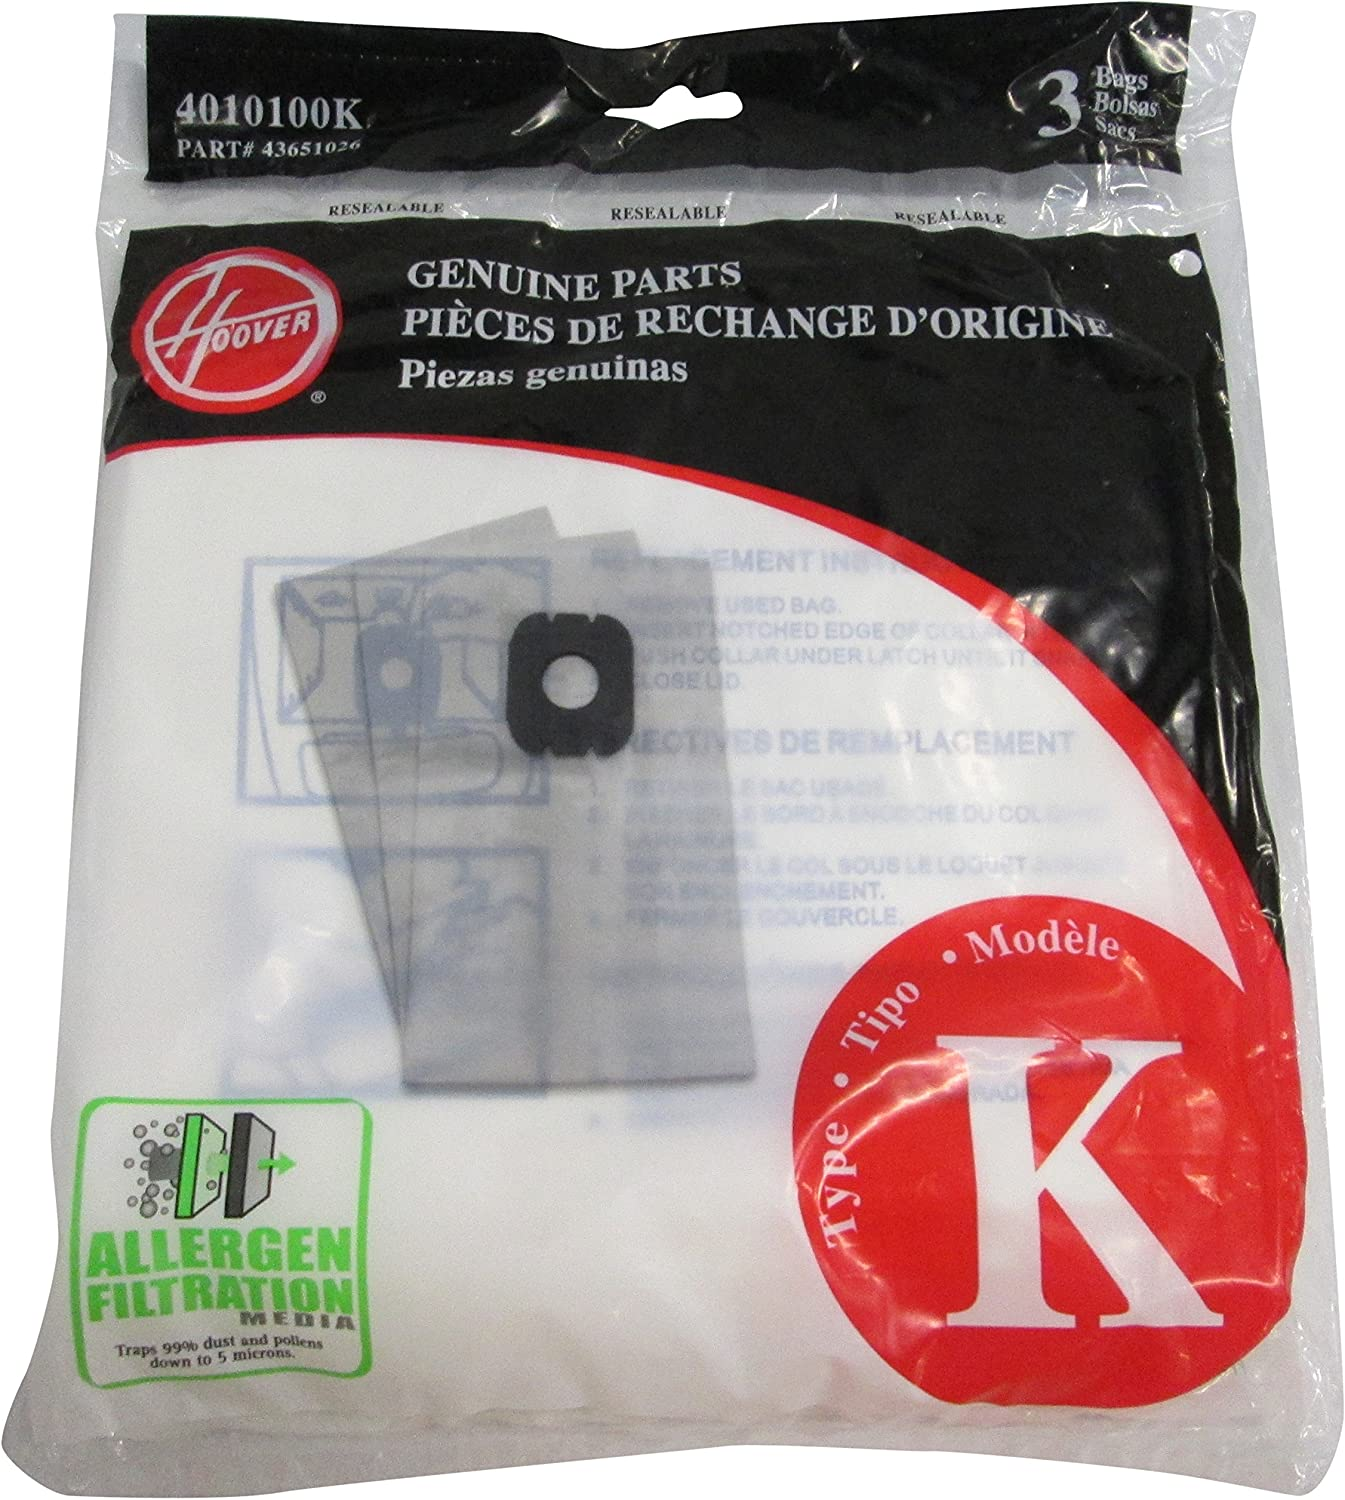 Hoover Store 3 Pack Style K Allergen Vacuum Cheap SALE Start Filtration Bags